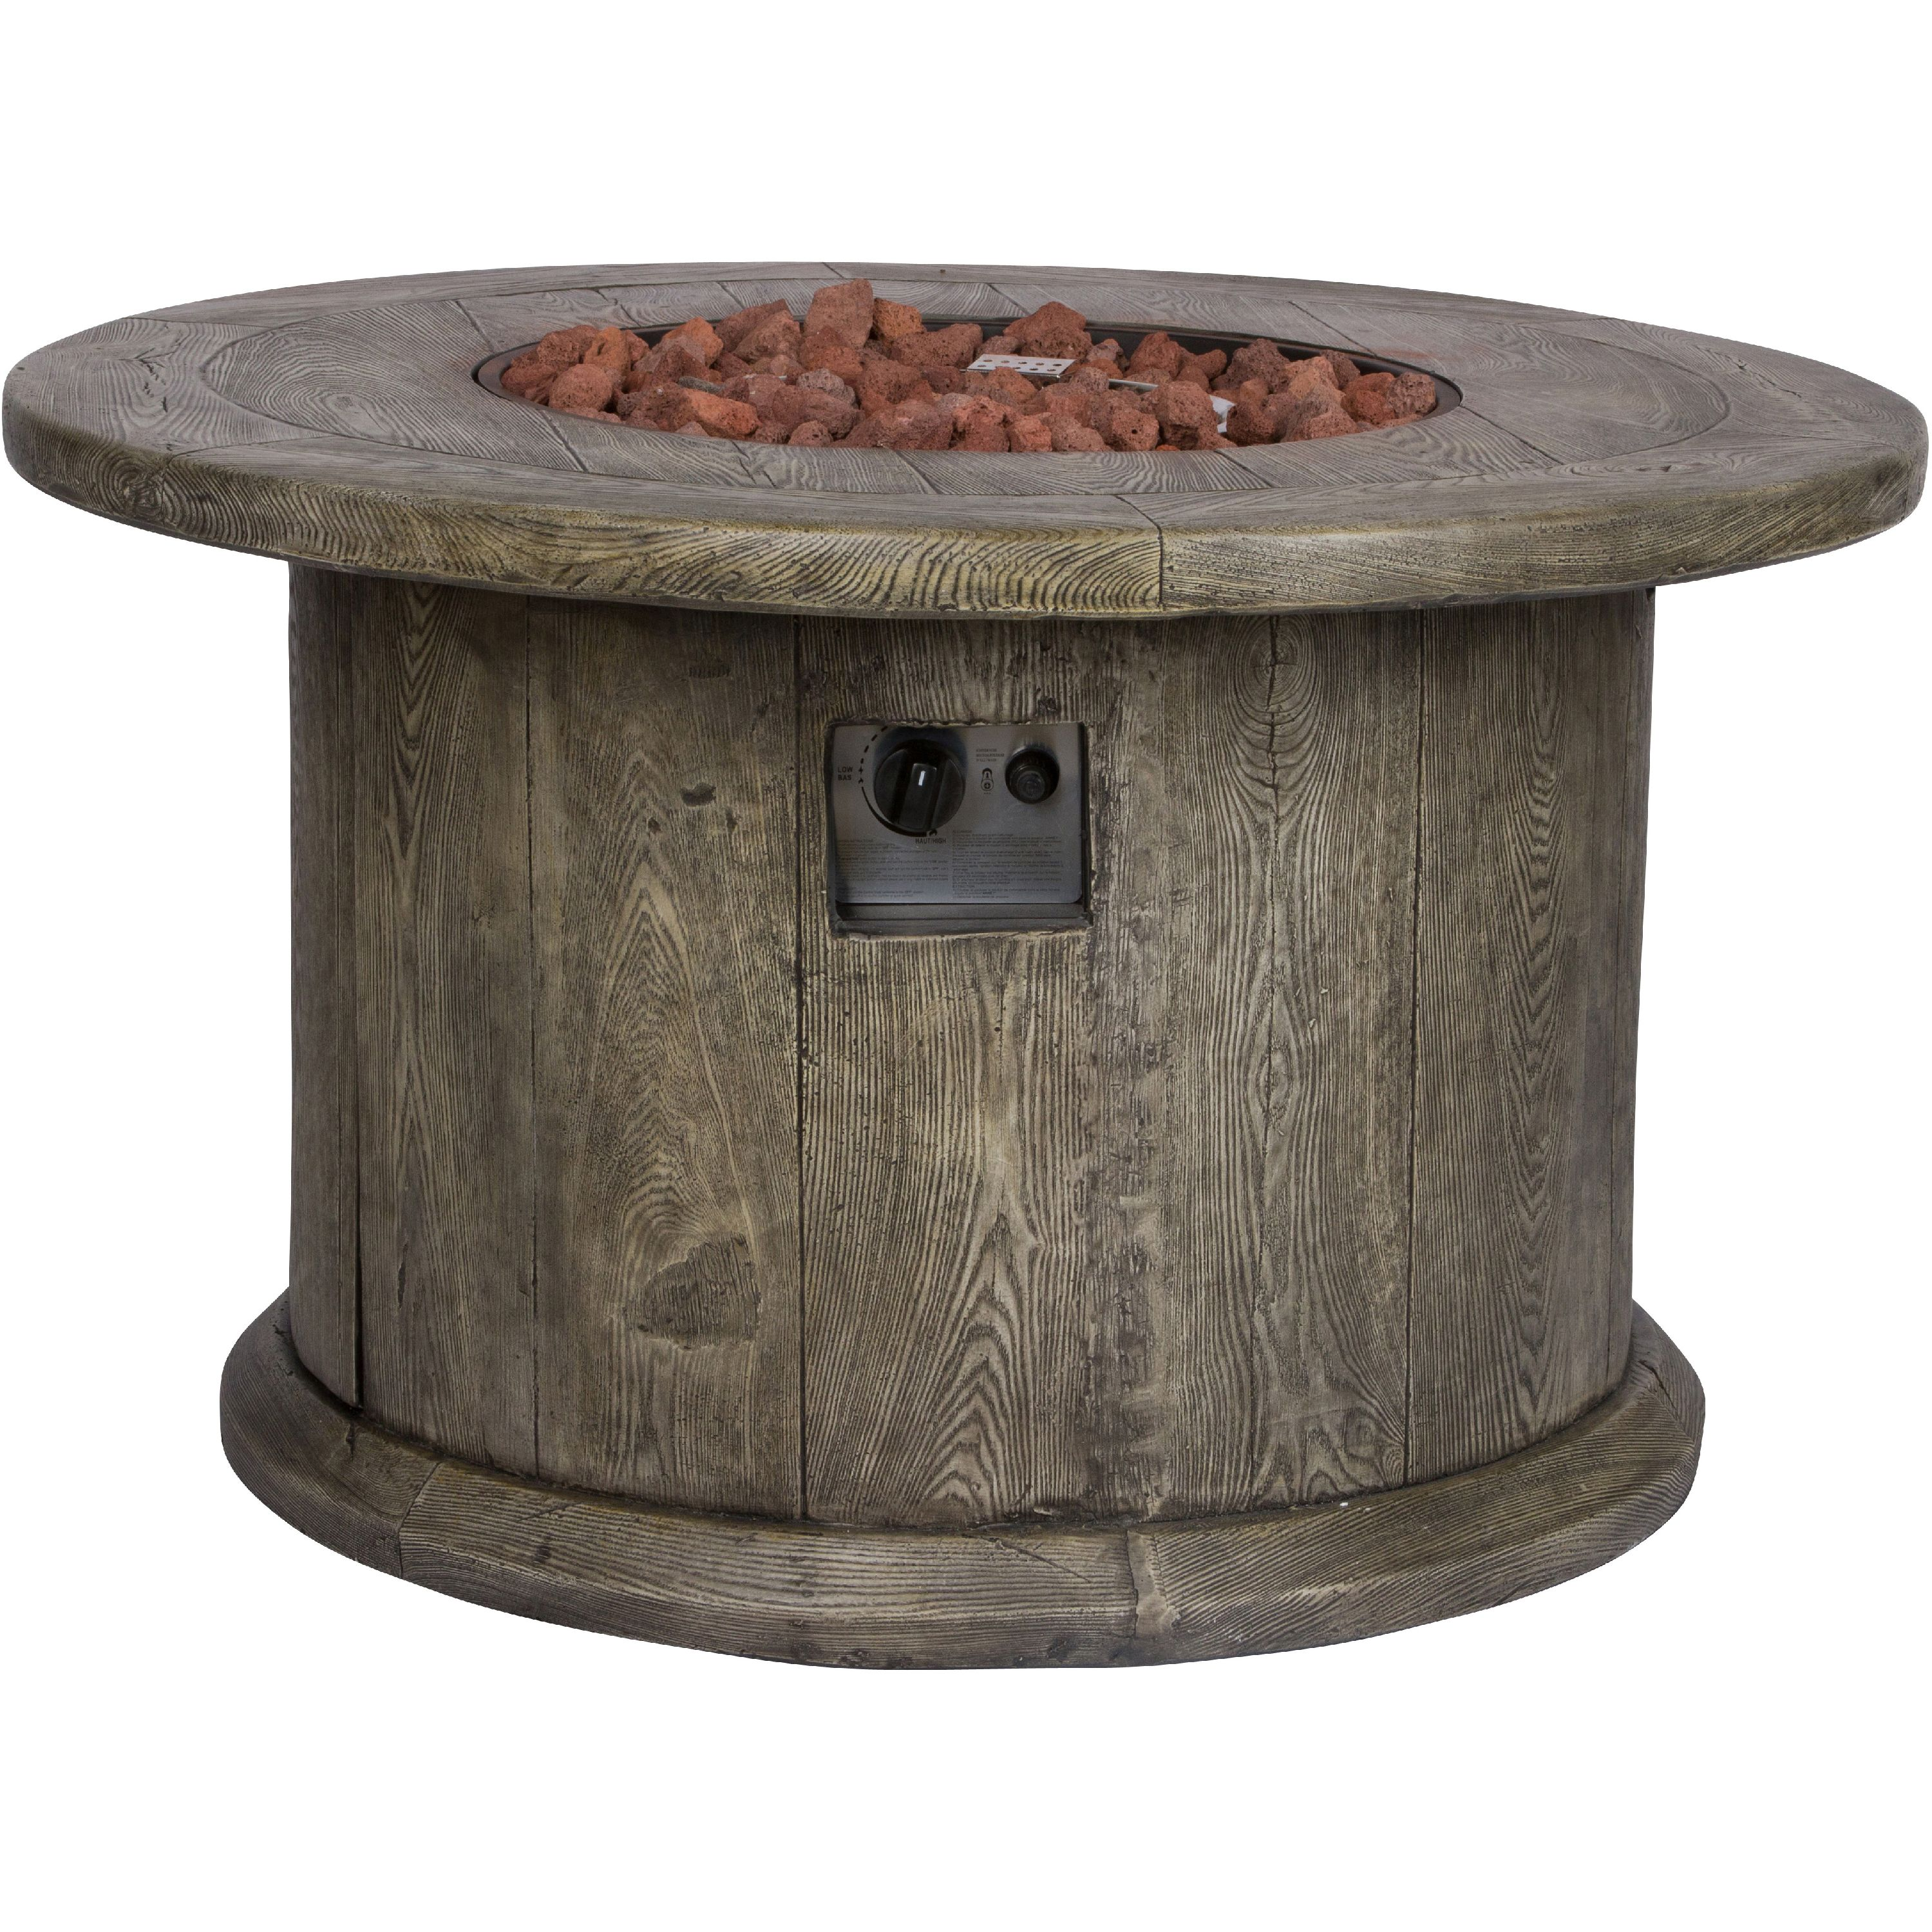 shine company merida 40 in round outdoor fire pit table grey